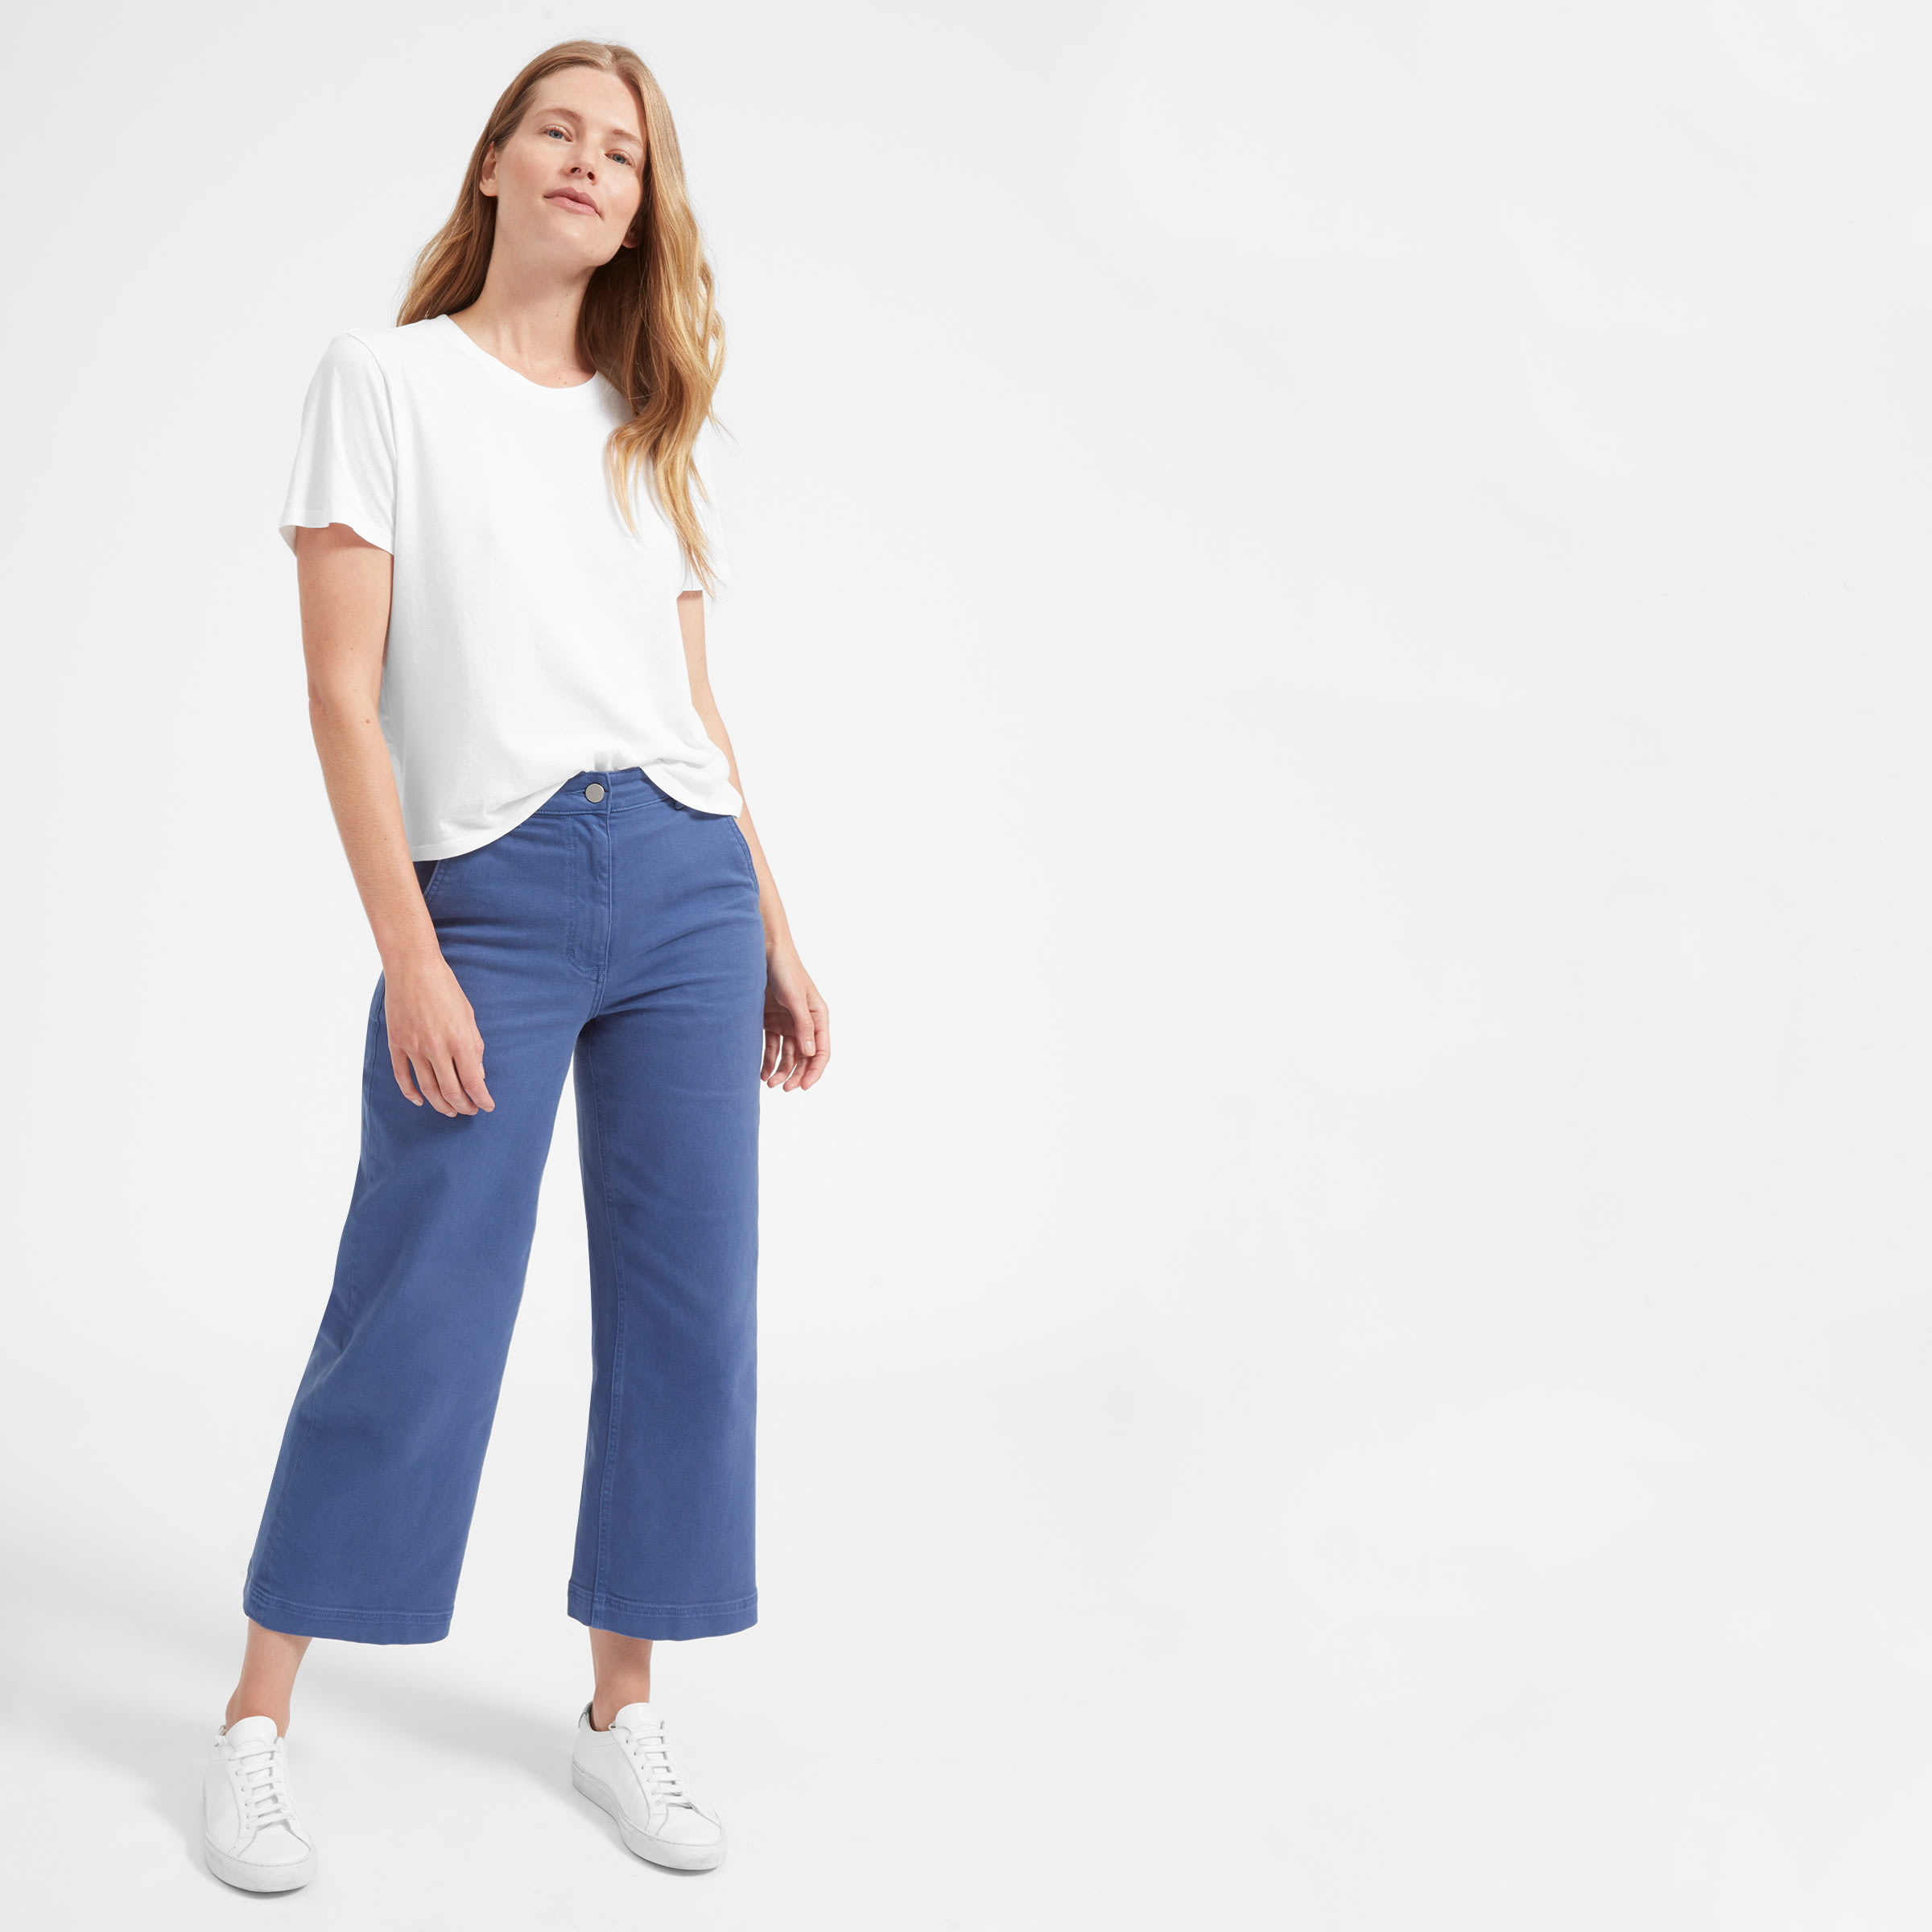 Everlane - Women's White Tee